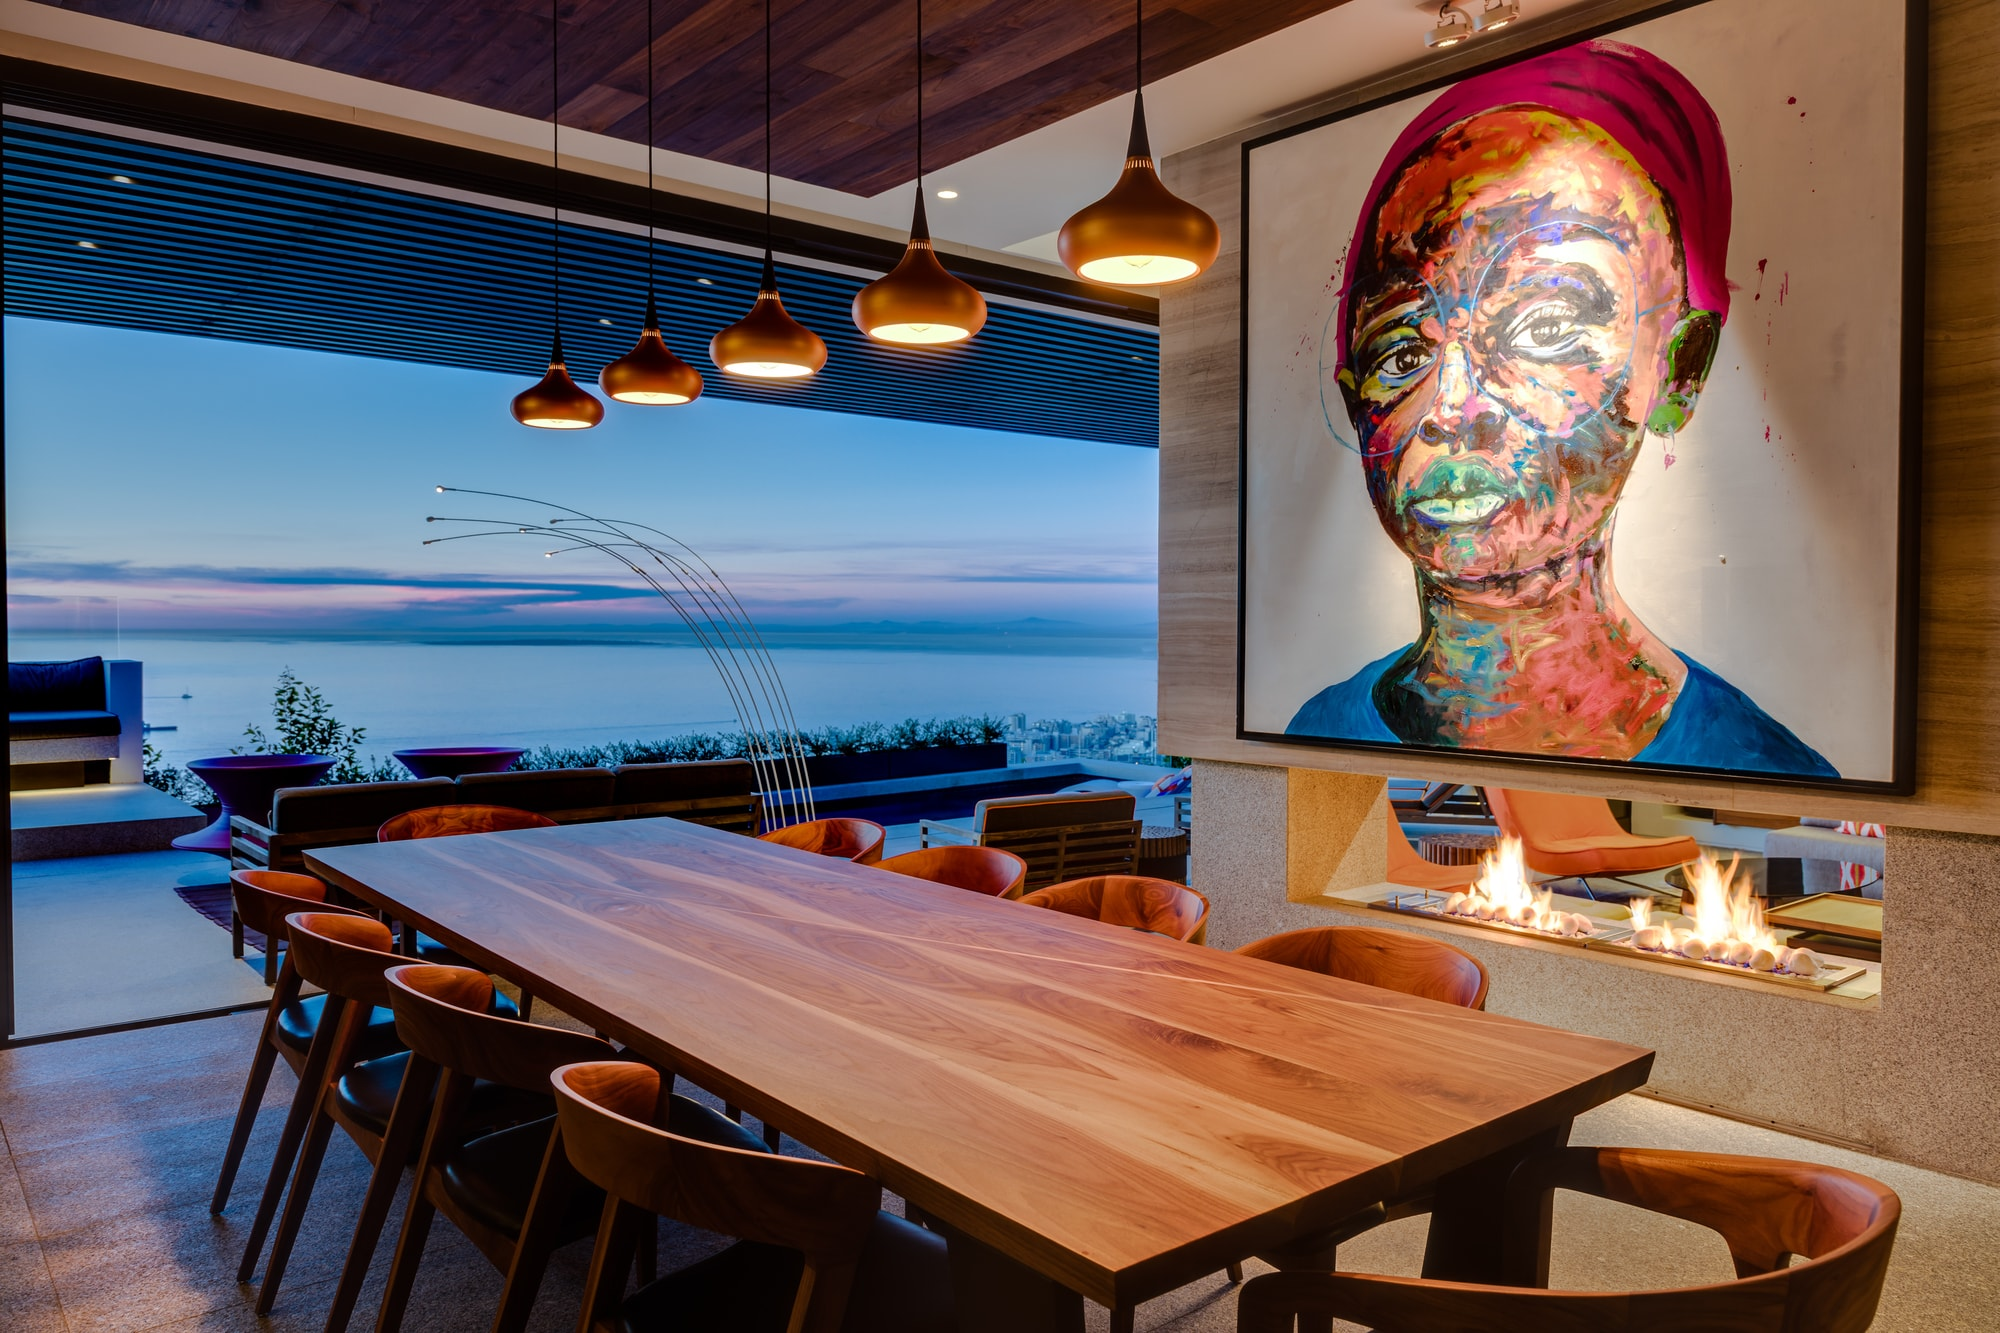 Sealion dining room with view of ocean skyline